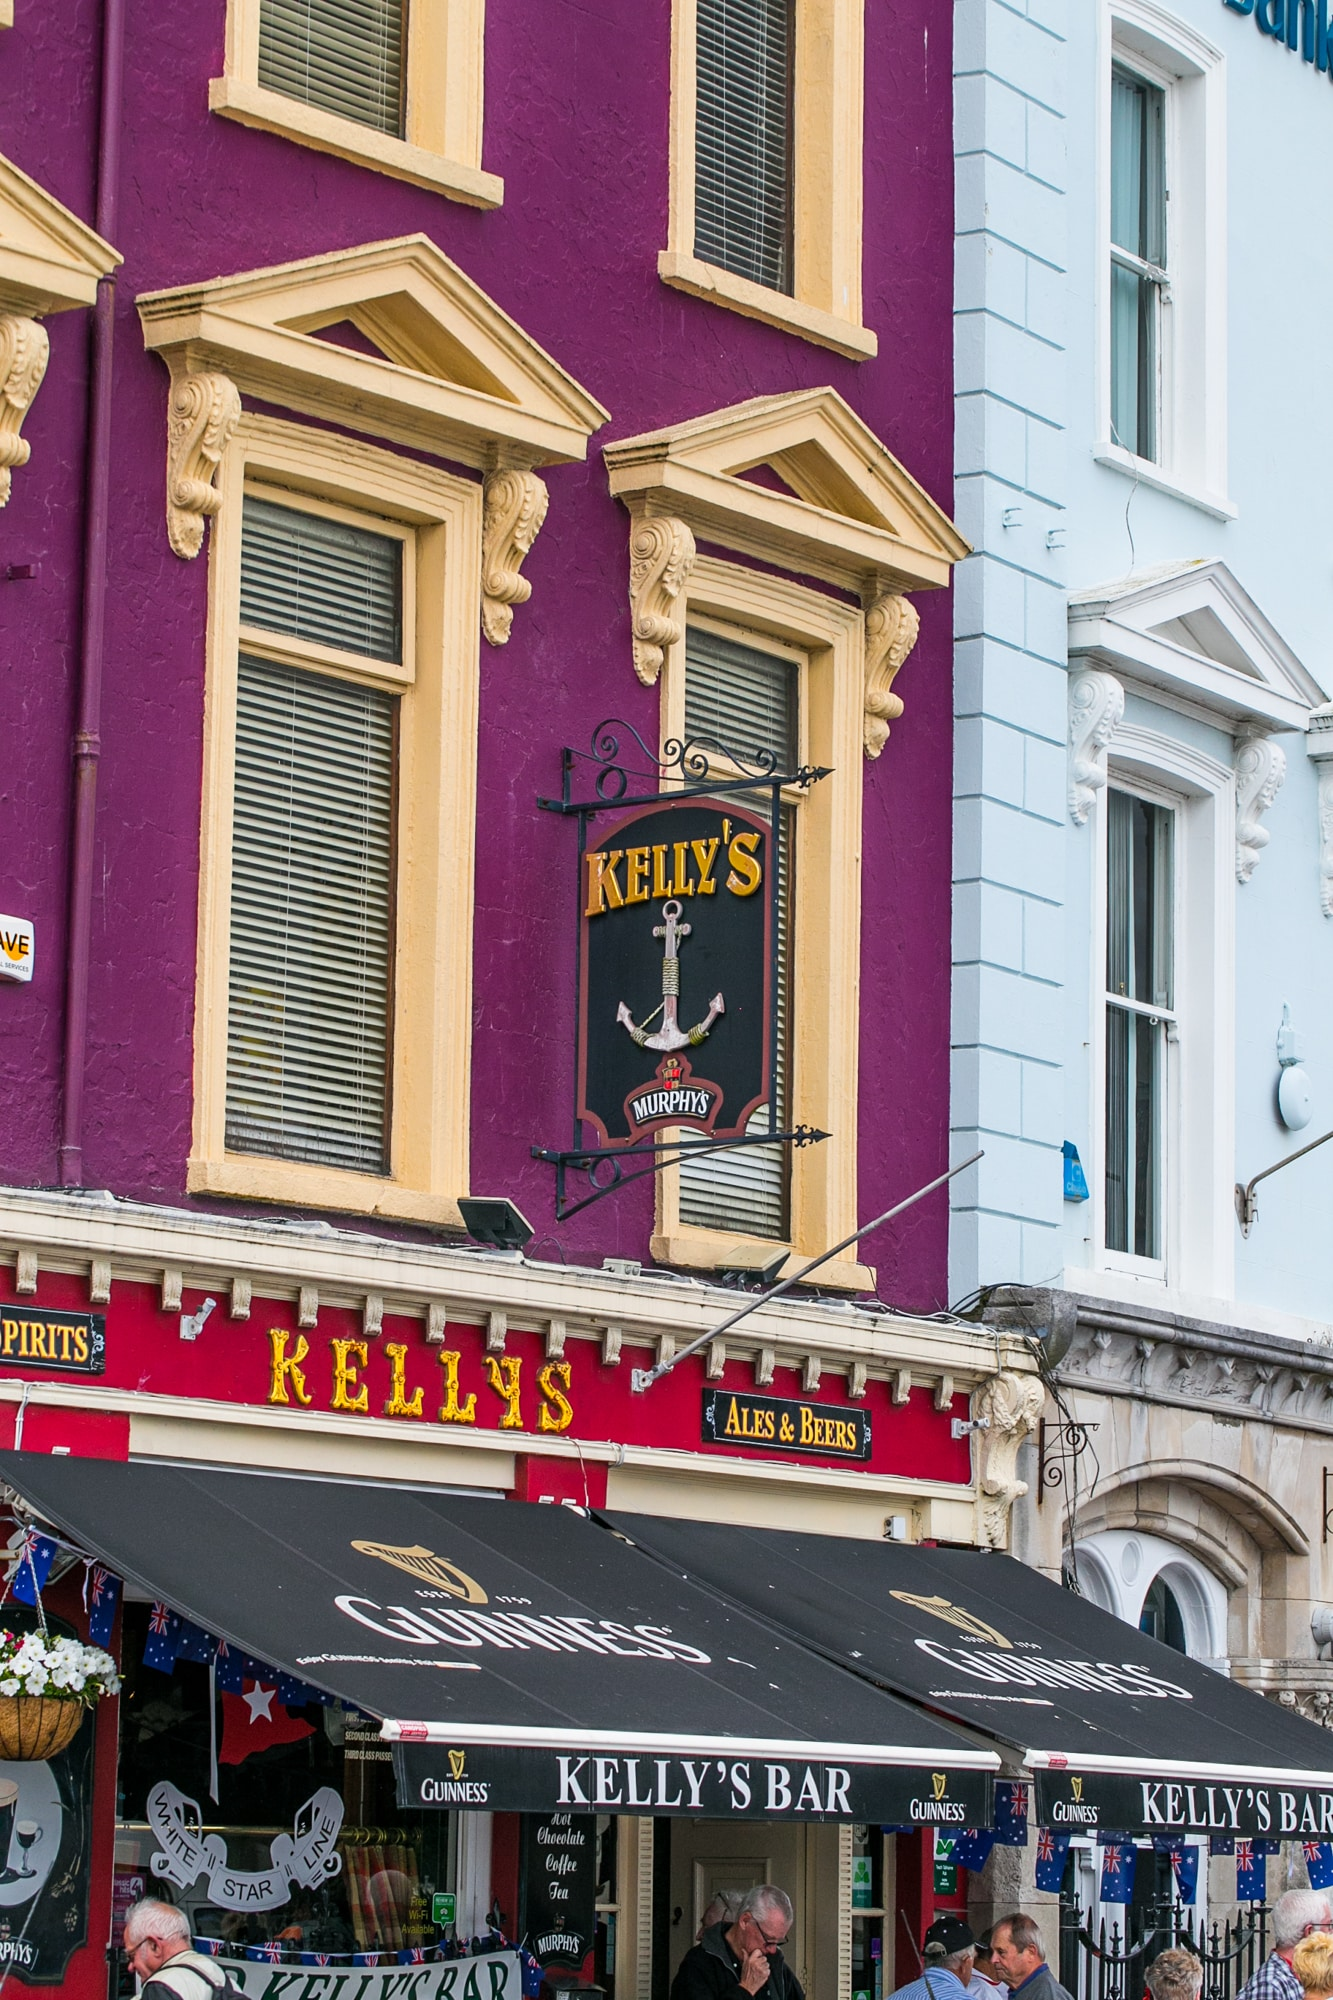 Kelly's bar and grill, Cobh Ireland